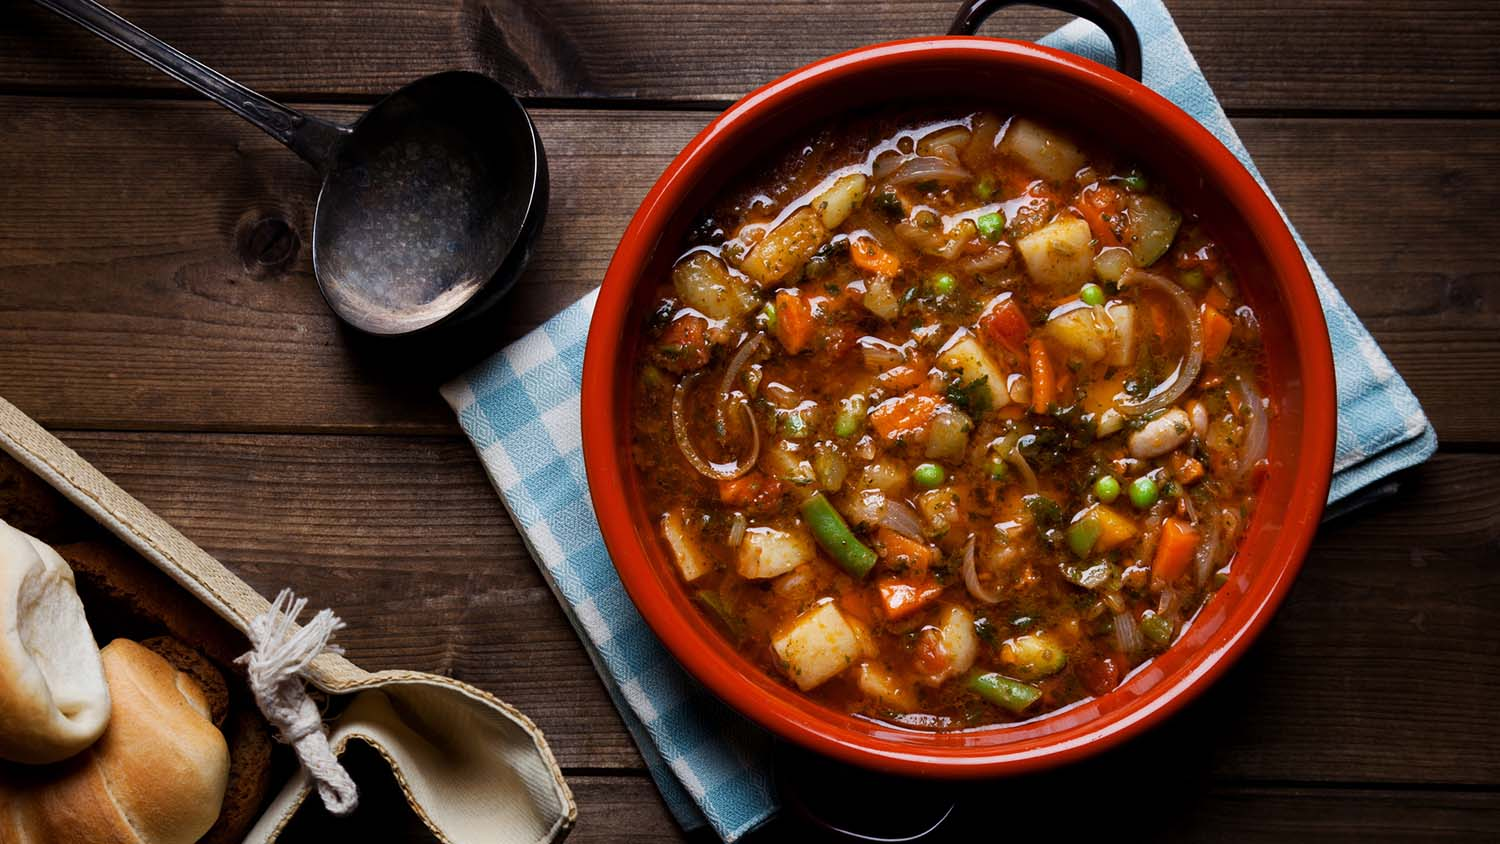 Dr. Oz's Delicious Bean Soup Will Help You Drop Those Extra Pounds by Christmas